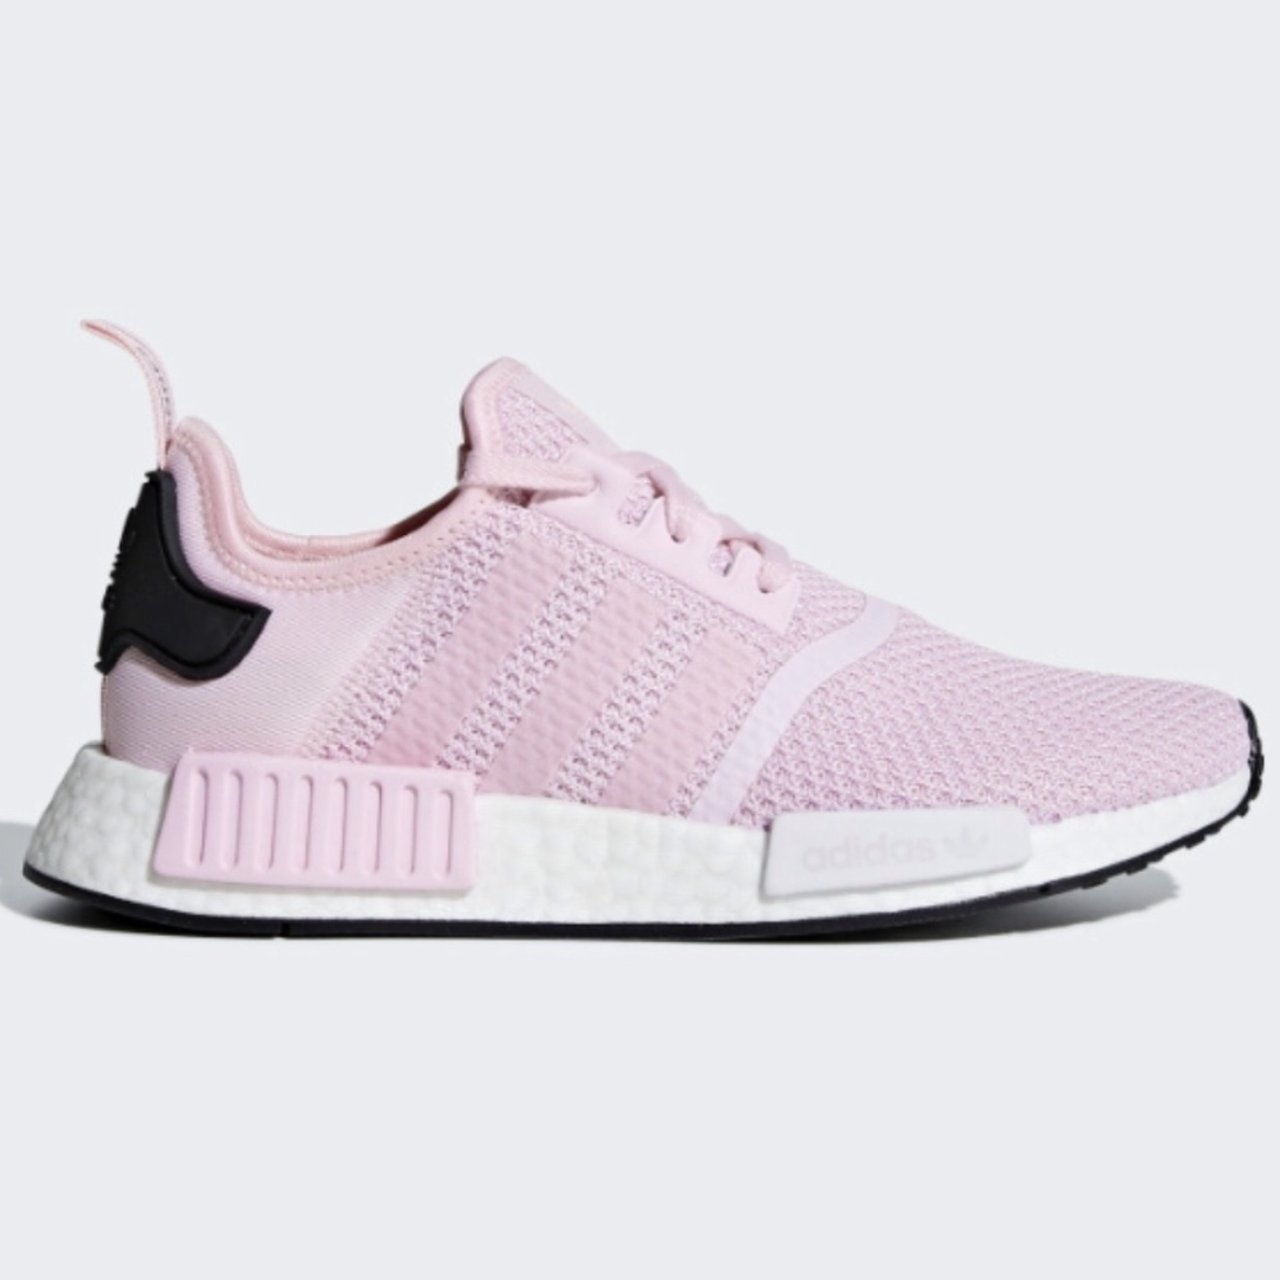 Adidas NMD R1 shoes Women s 7.5 Color  Clear Pink Cloud new - Depop 4ccca57528